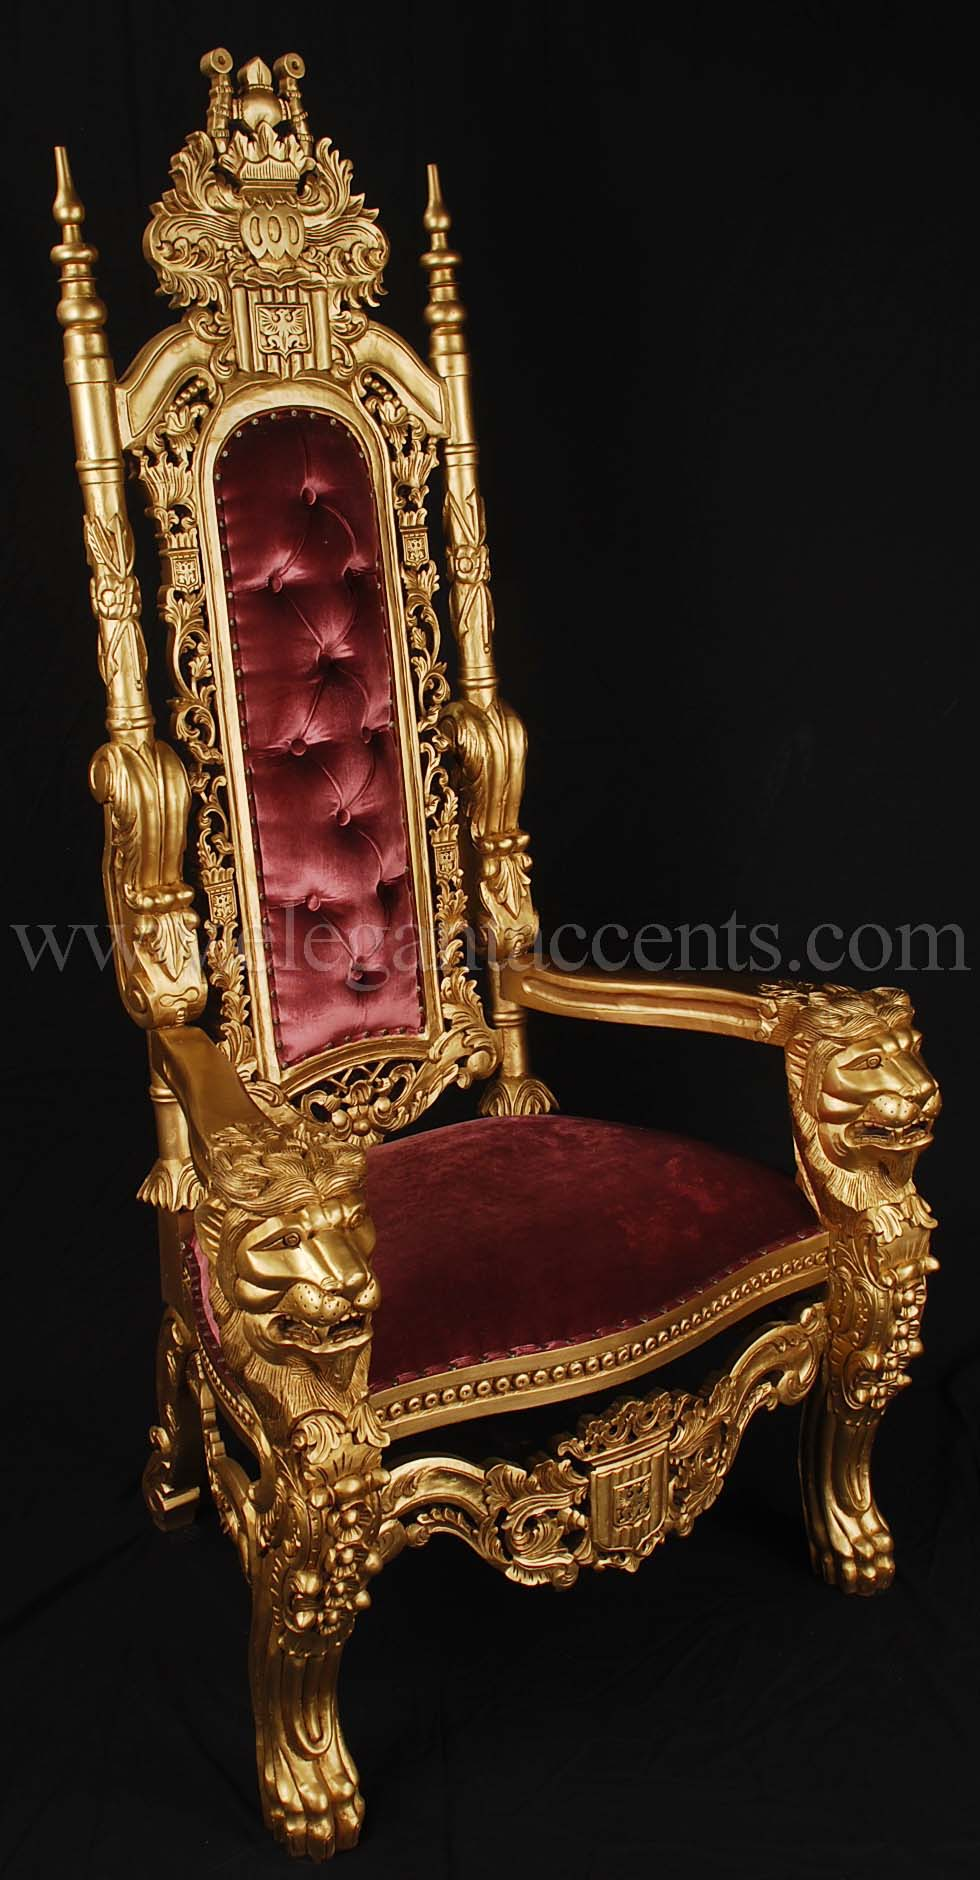 Products Gt Accent Chairs Amp Thrones Gt Throne Chairs